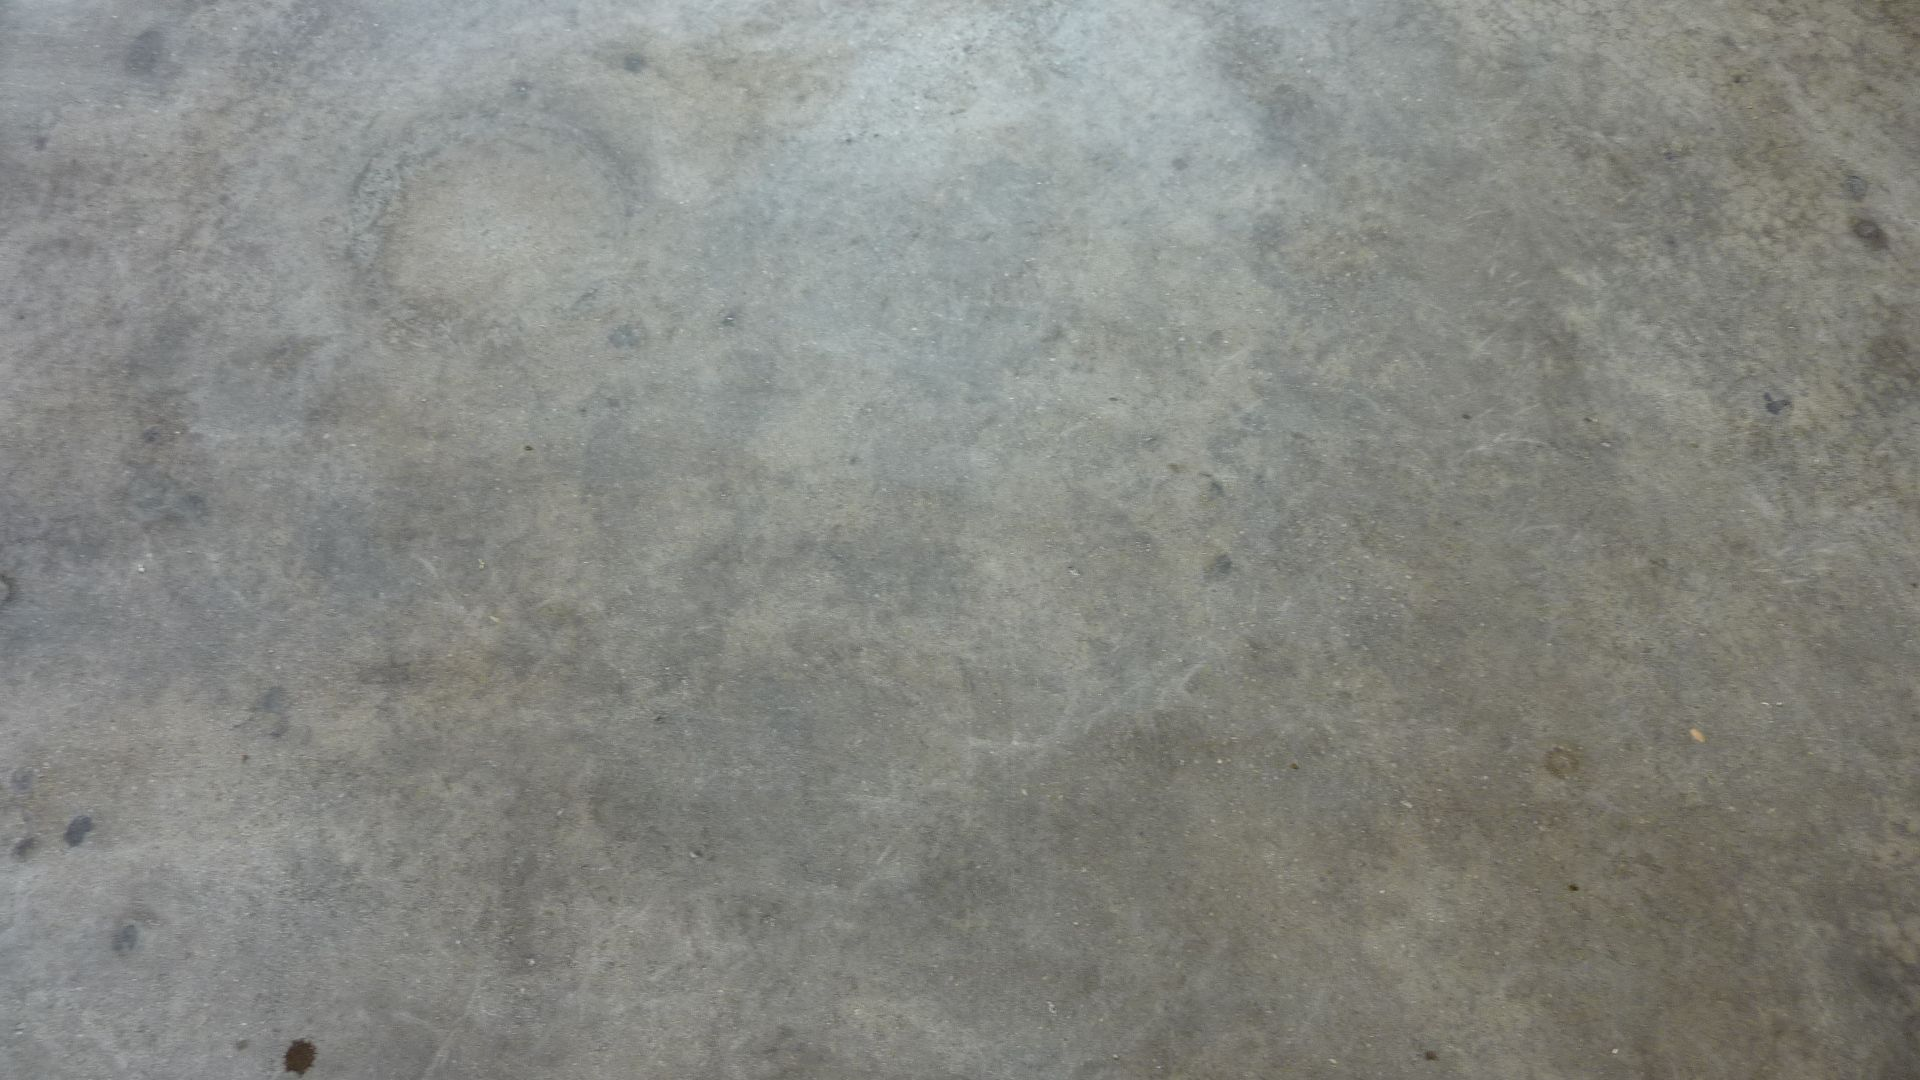 Polished Concrete Flooring Texture Amazing Design 817155 Ideas